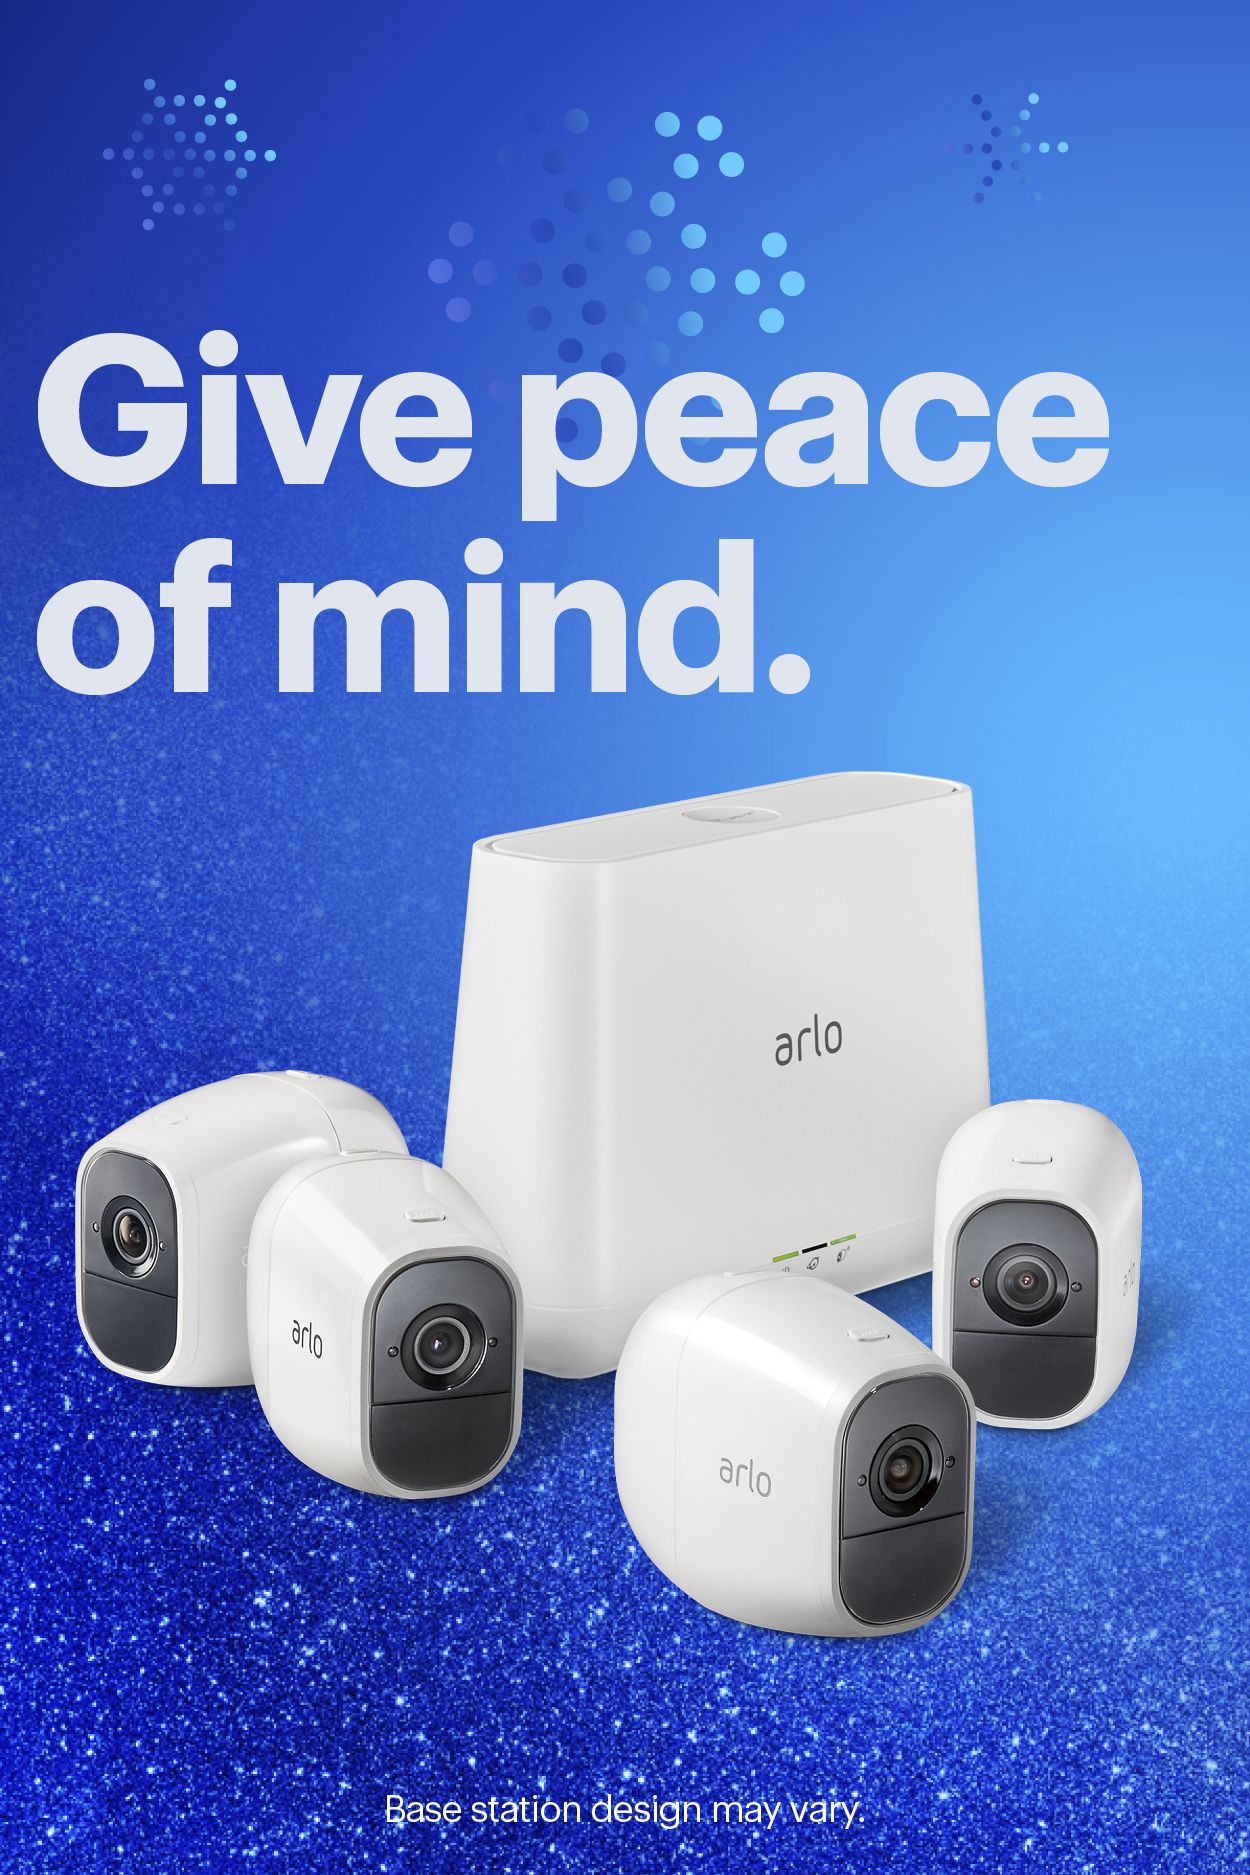 Save 250 On Arlo Pro 2 With 4 Cameras And Give Peace Of Mind In Crisp 1080p Hd Quality No Wir Security Camera System Cool Things To Buy Home Security Systems